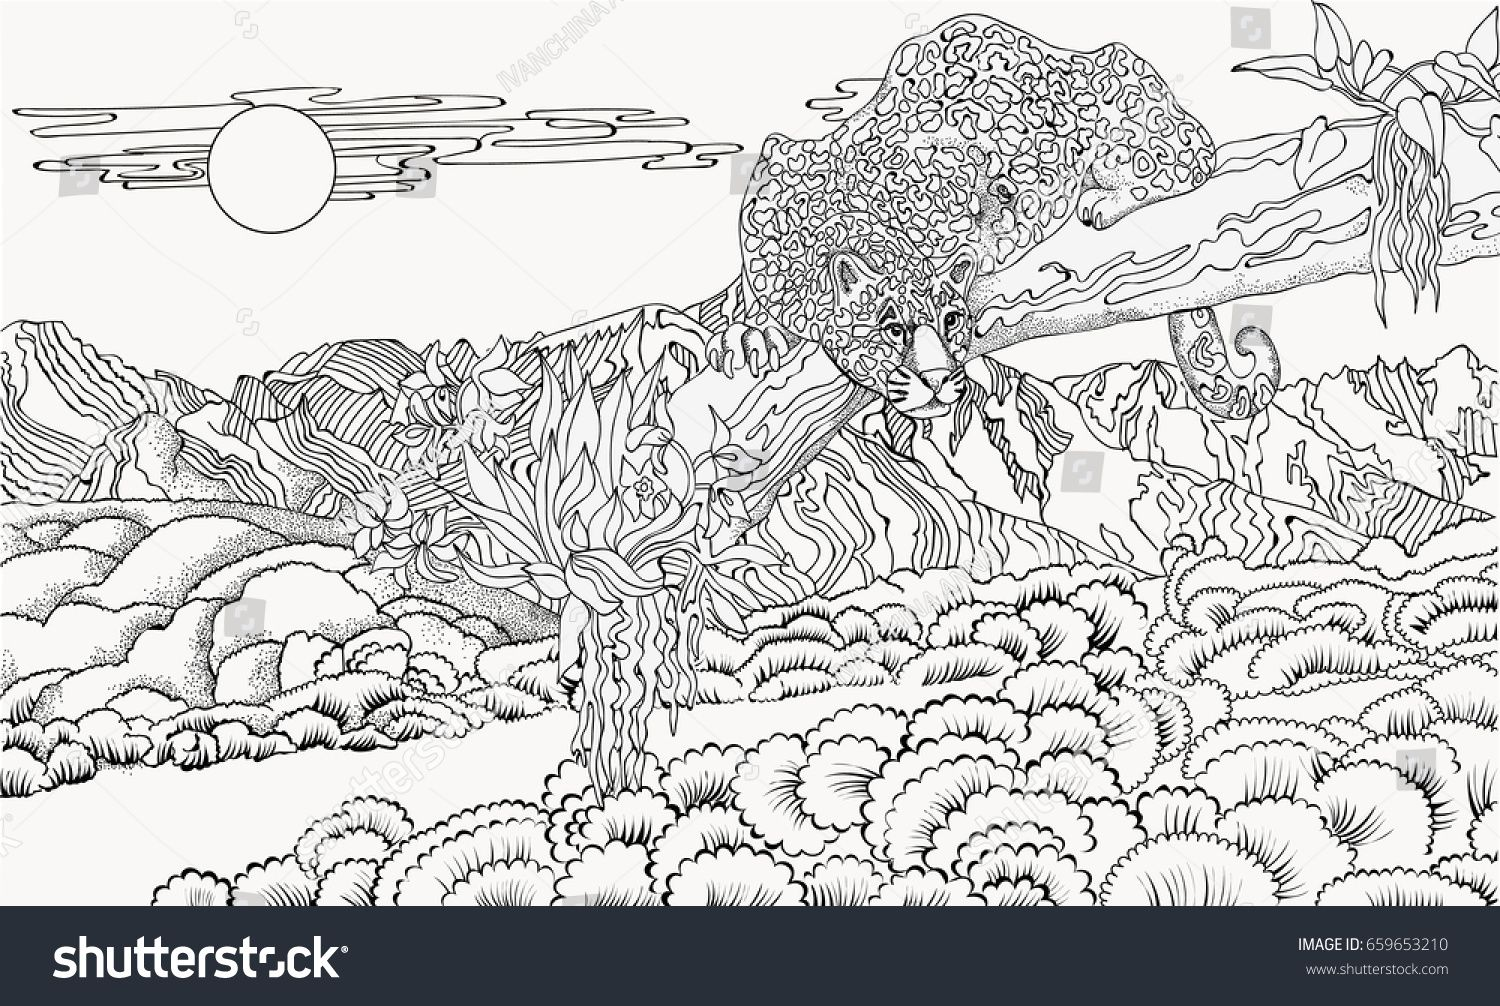 Detailed Landscape Coloring Pages For Adults 54